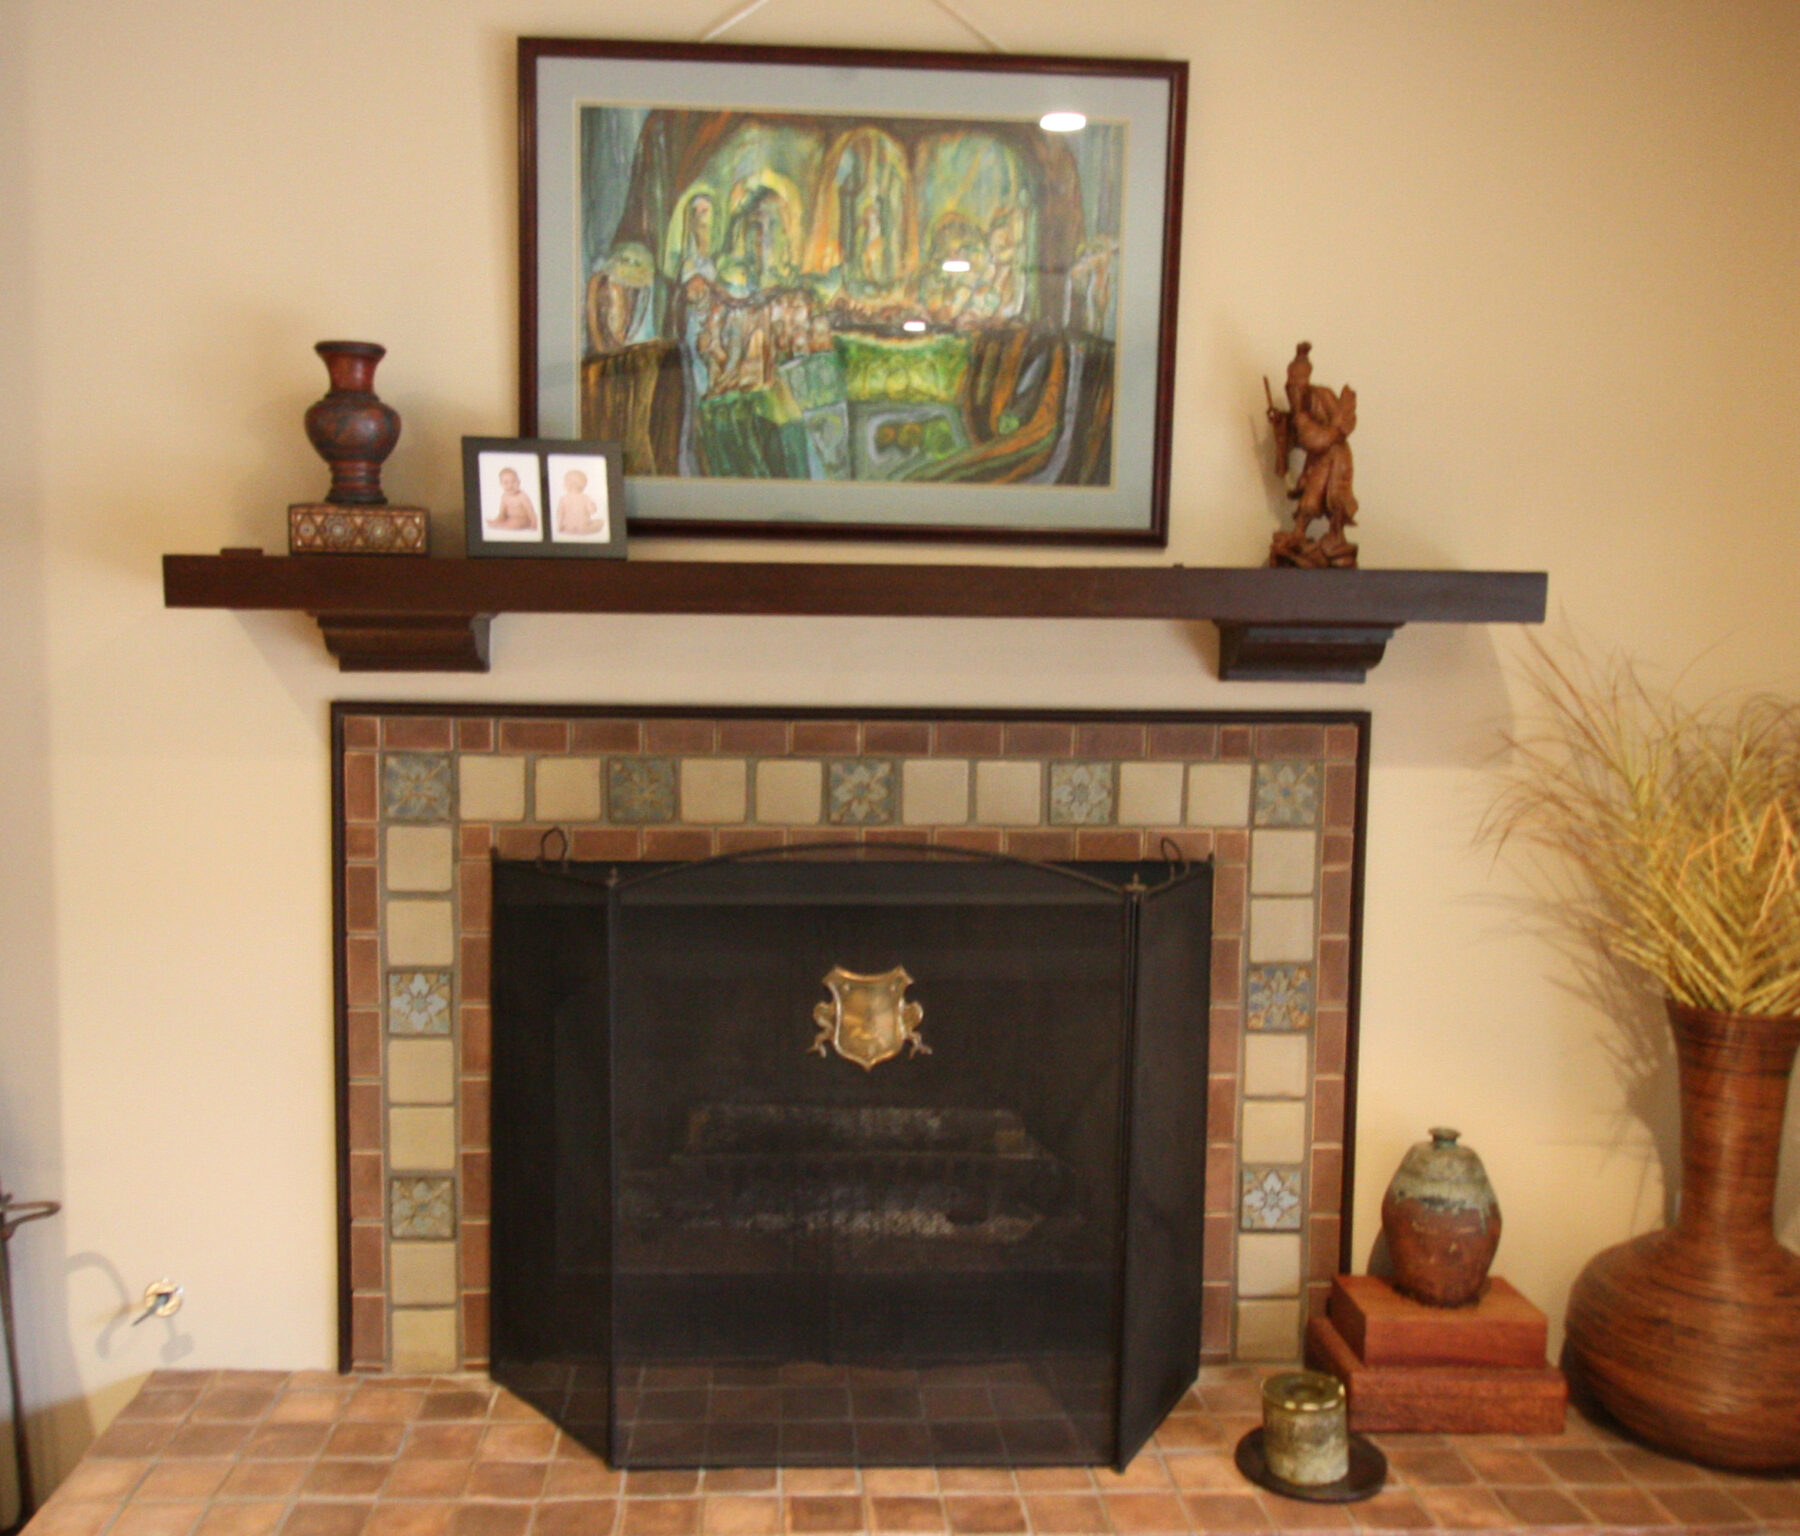 Fireplace with custom tile work and wood mantle.